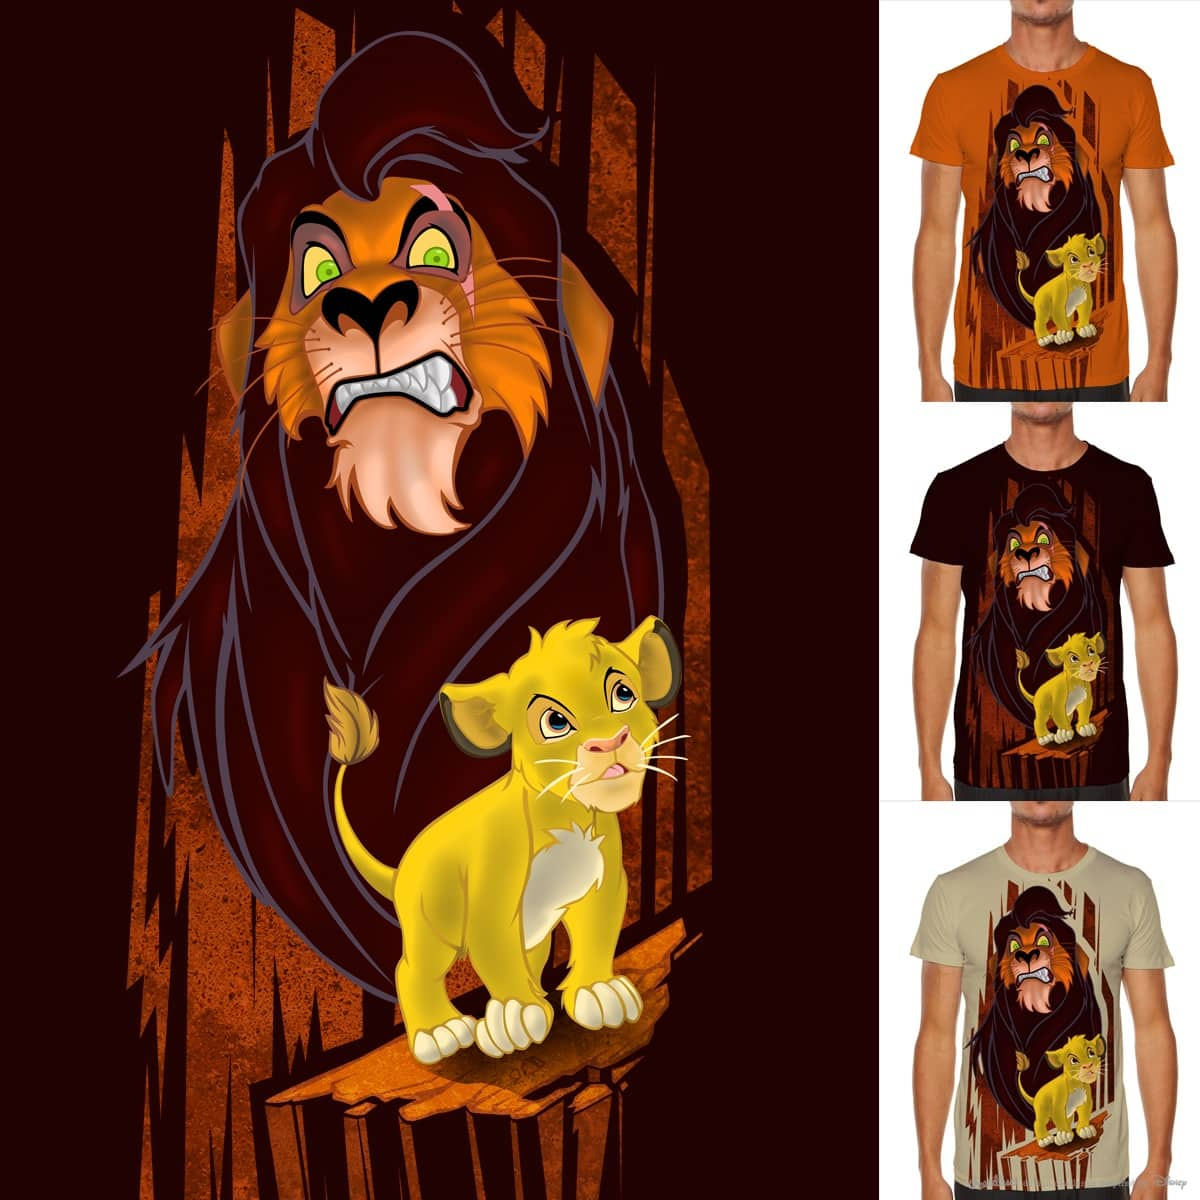 I will be the King by JohnthanFlores on Threadless